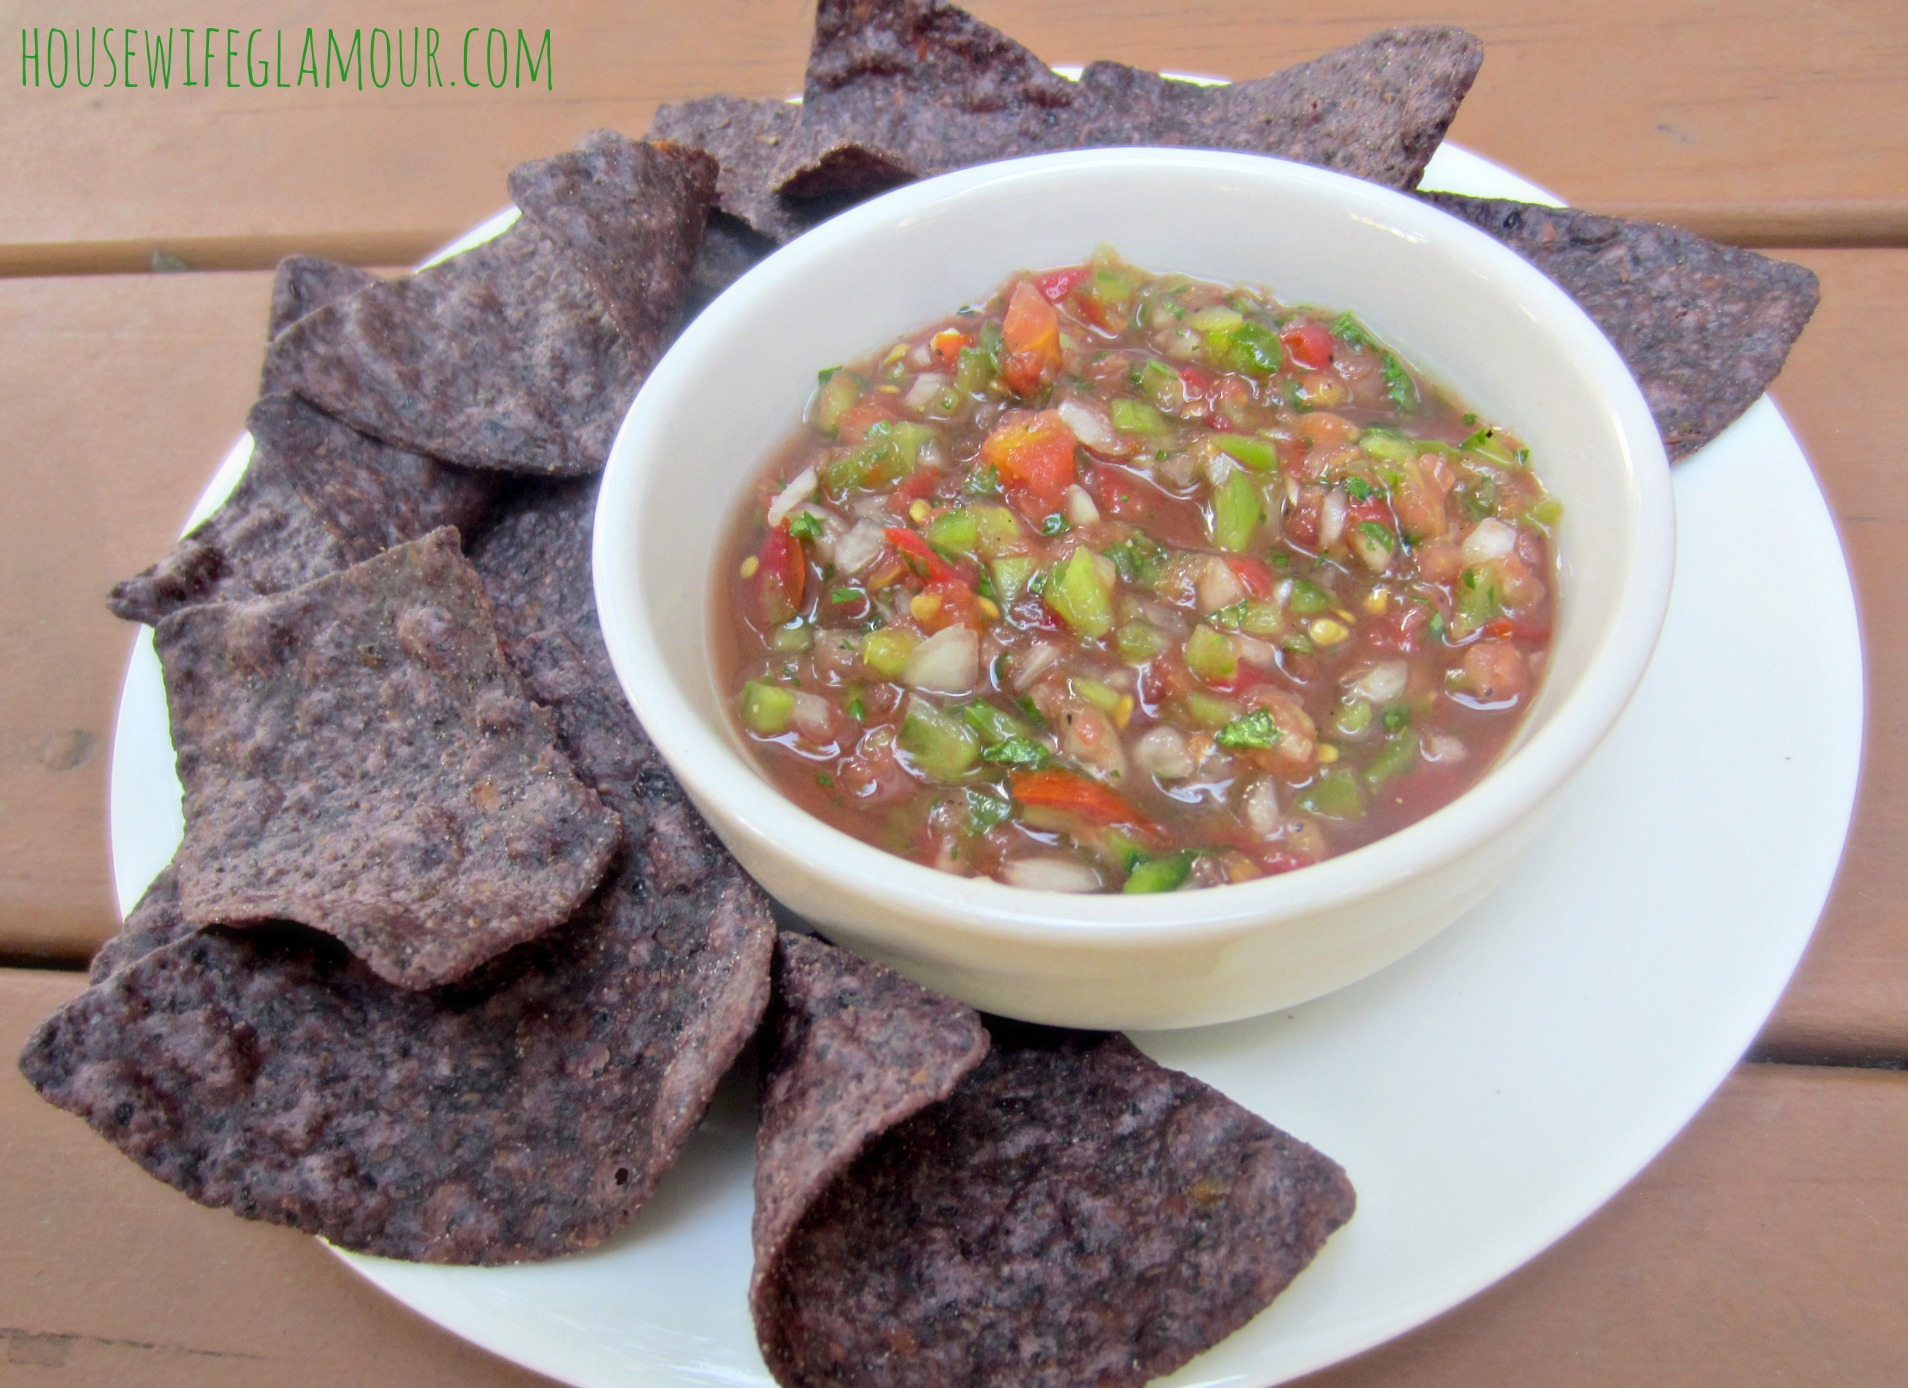 Healthy Homemade Salsa with corn chips